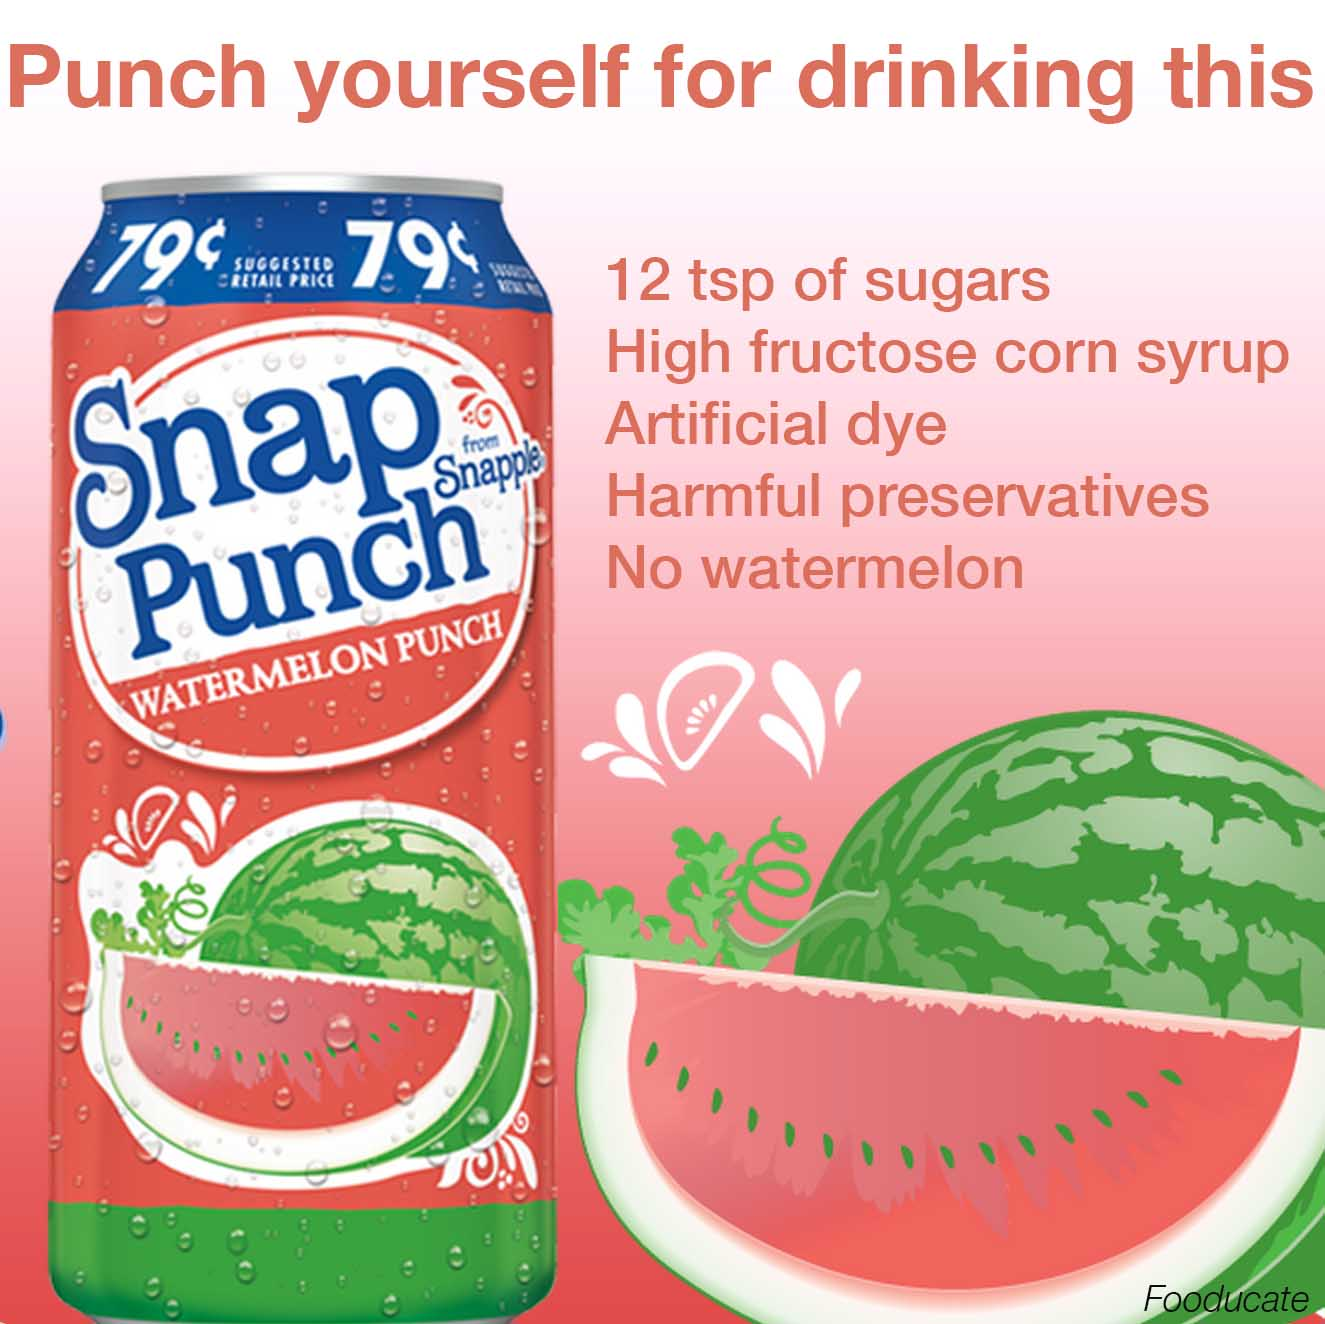 Snapple Punch – Harm Yourself for Just 79 Cents